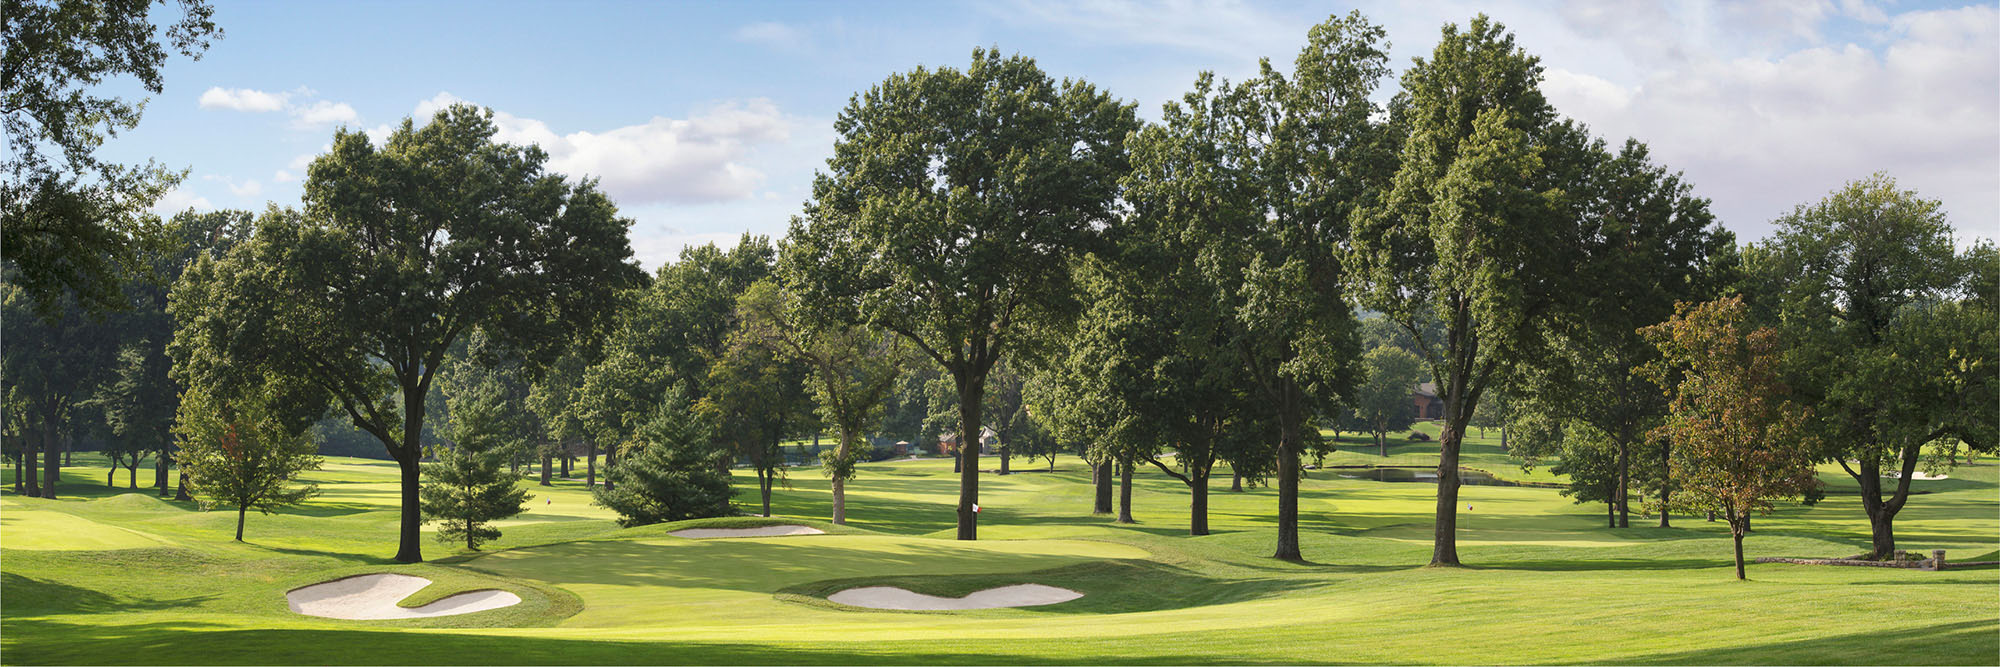 Golf Course Image - Indian Hills No. 3